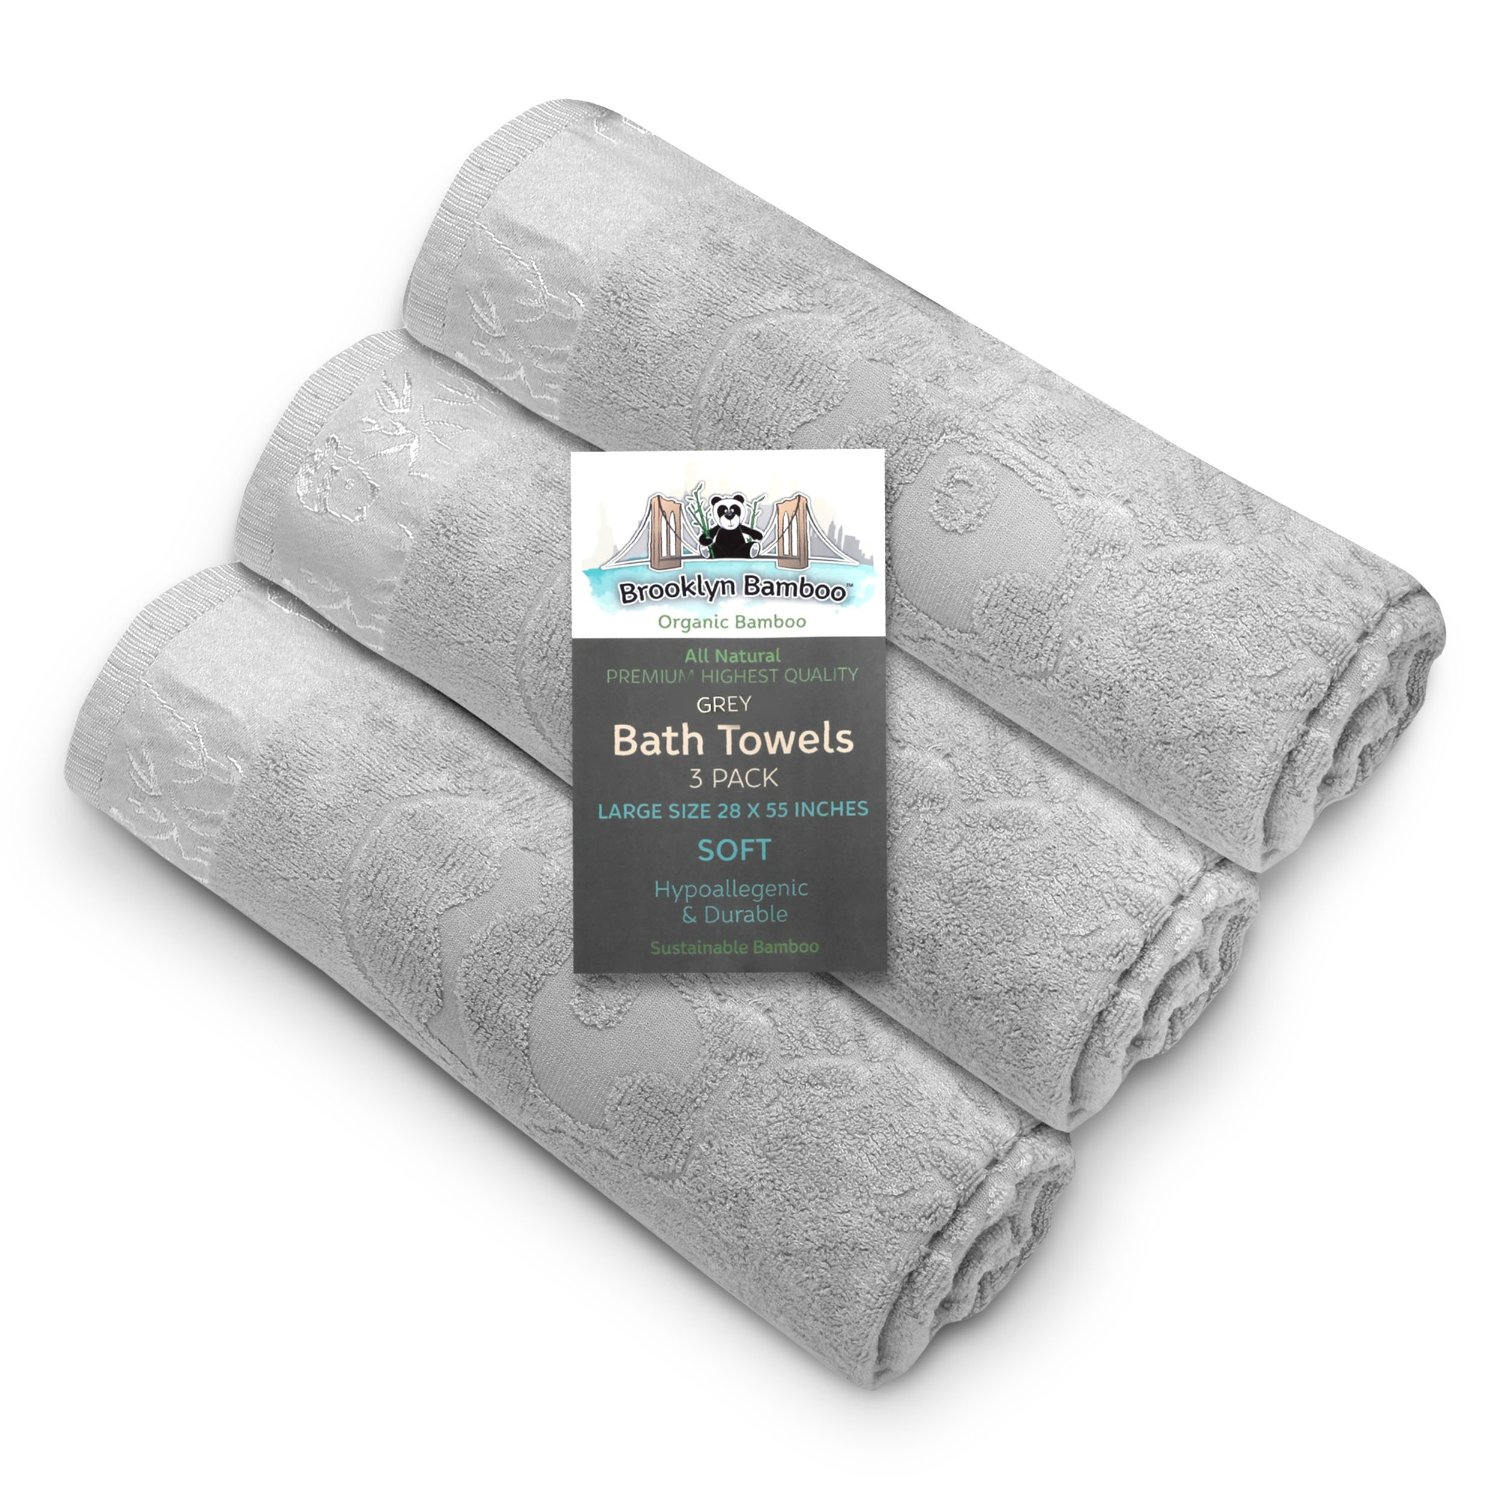 best bath towel, bath towel, bamboo bath towel, bath towel set